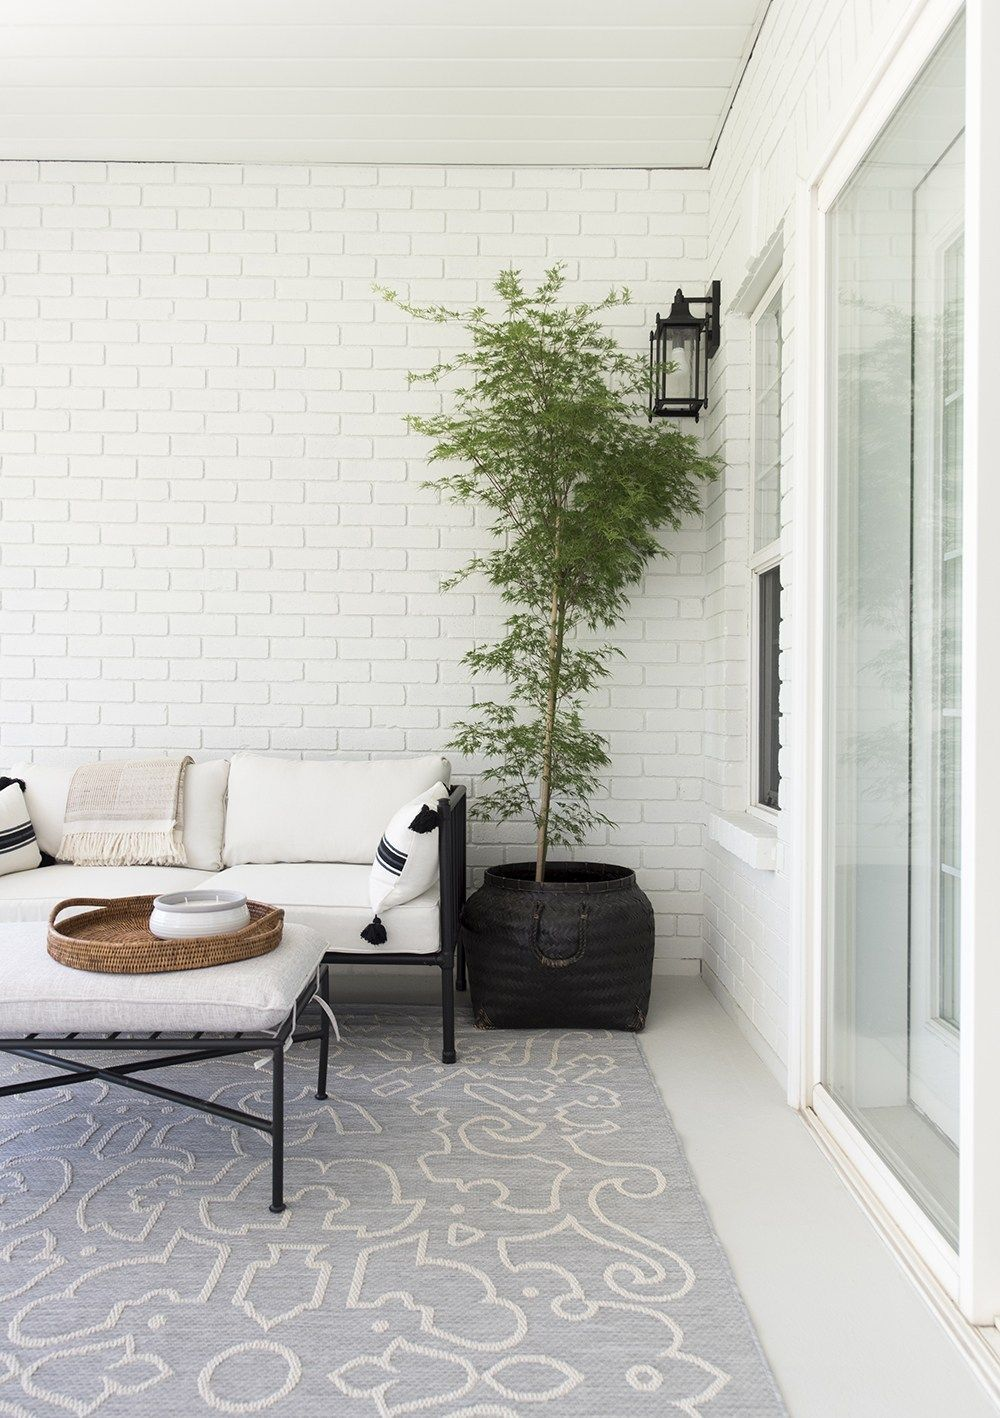 Bedroom Balcony Reveal Room For Tuesday Blog Bedroom Balcony Outdoor Living Space Balcony Decor